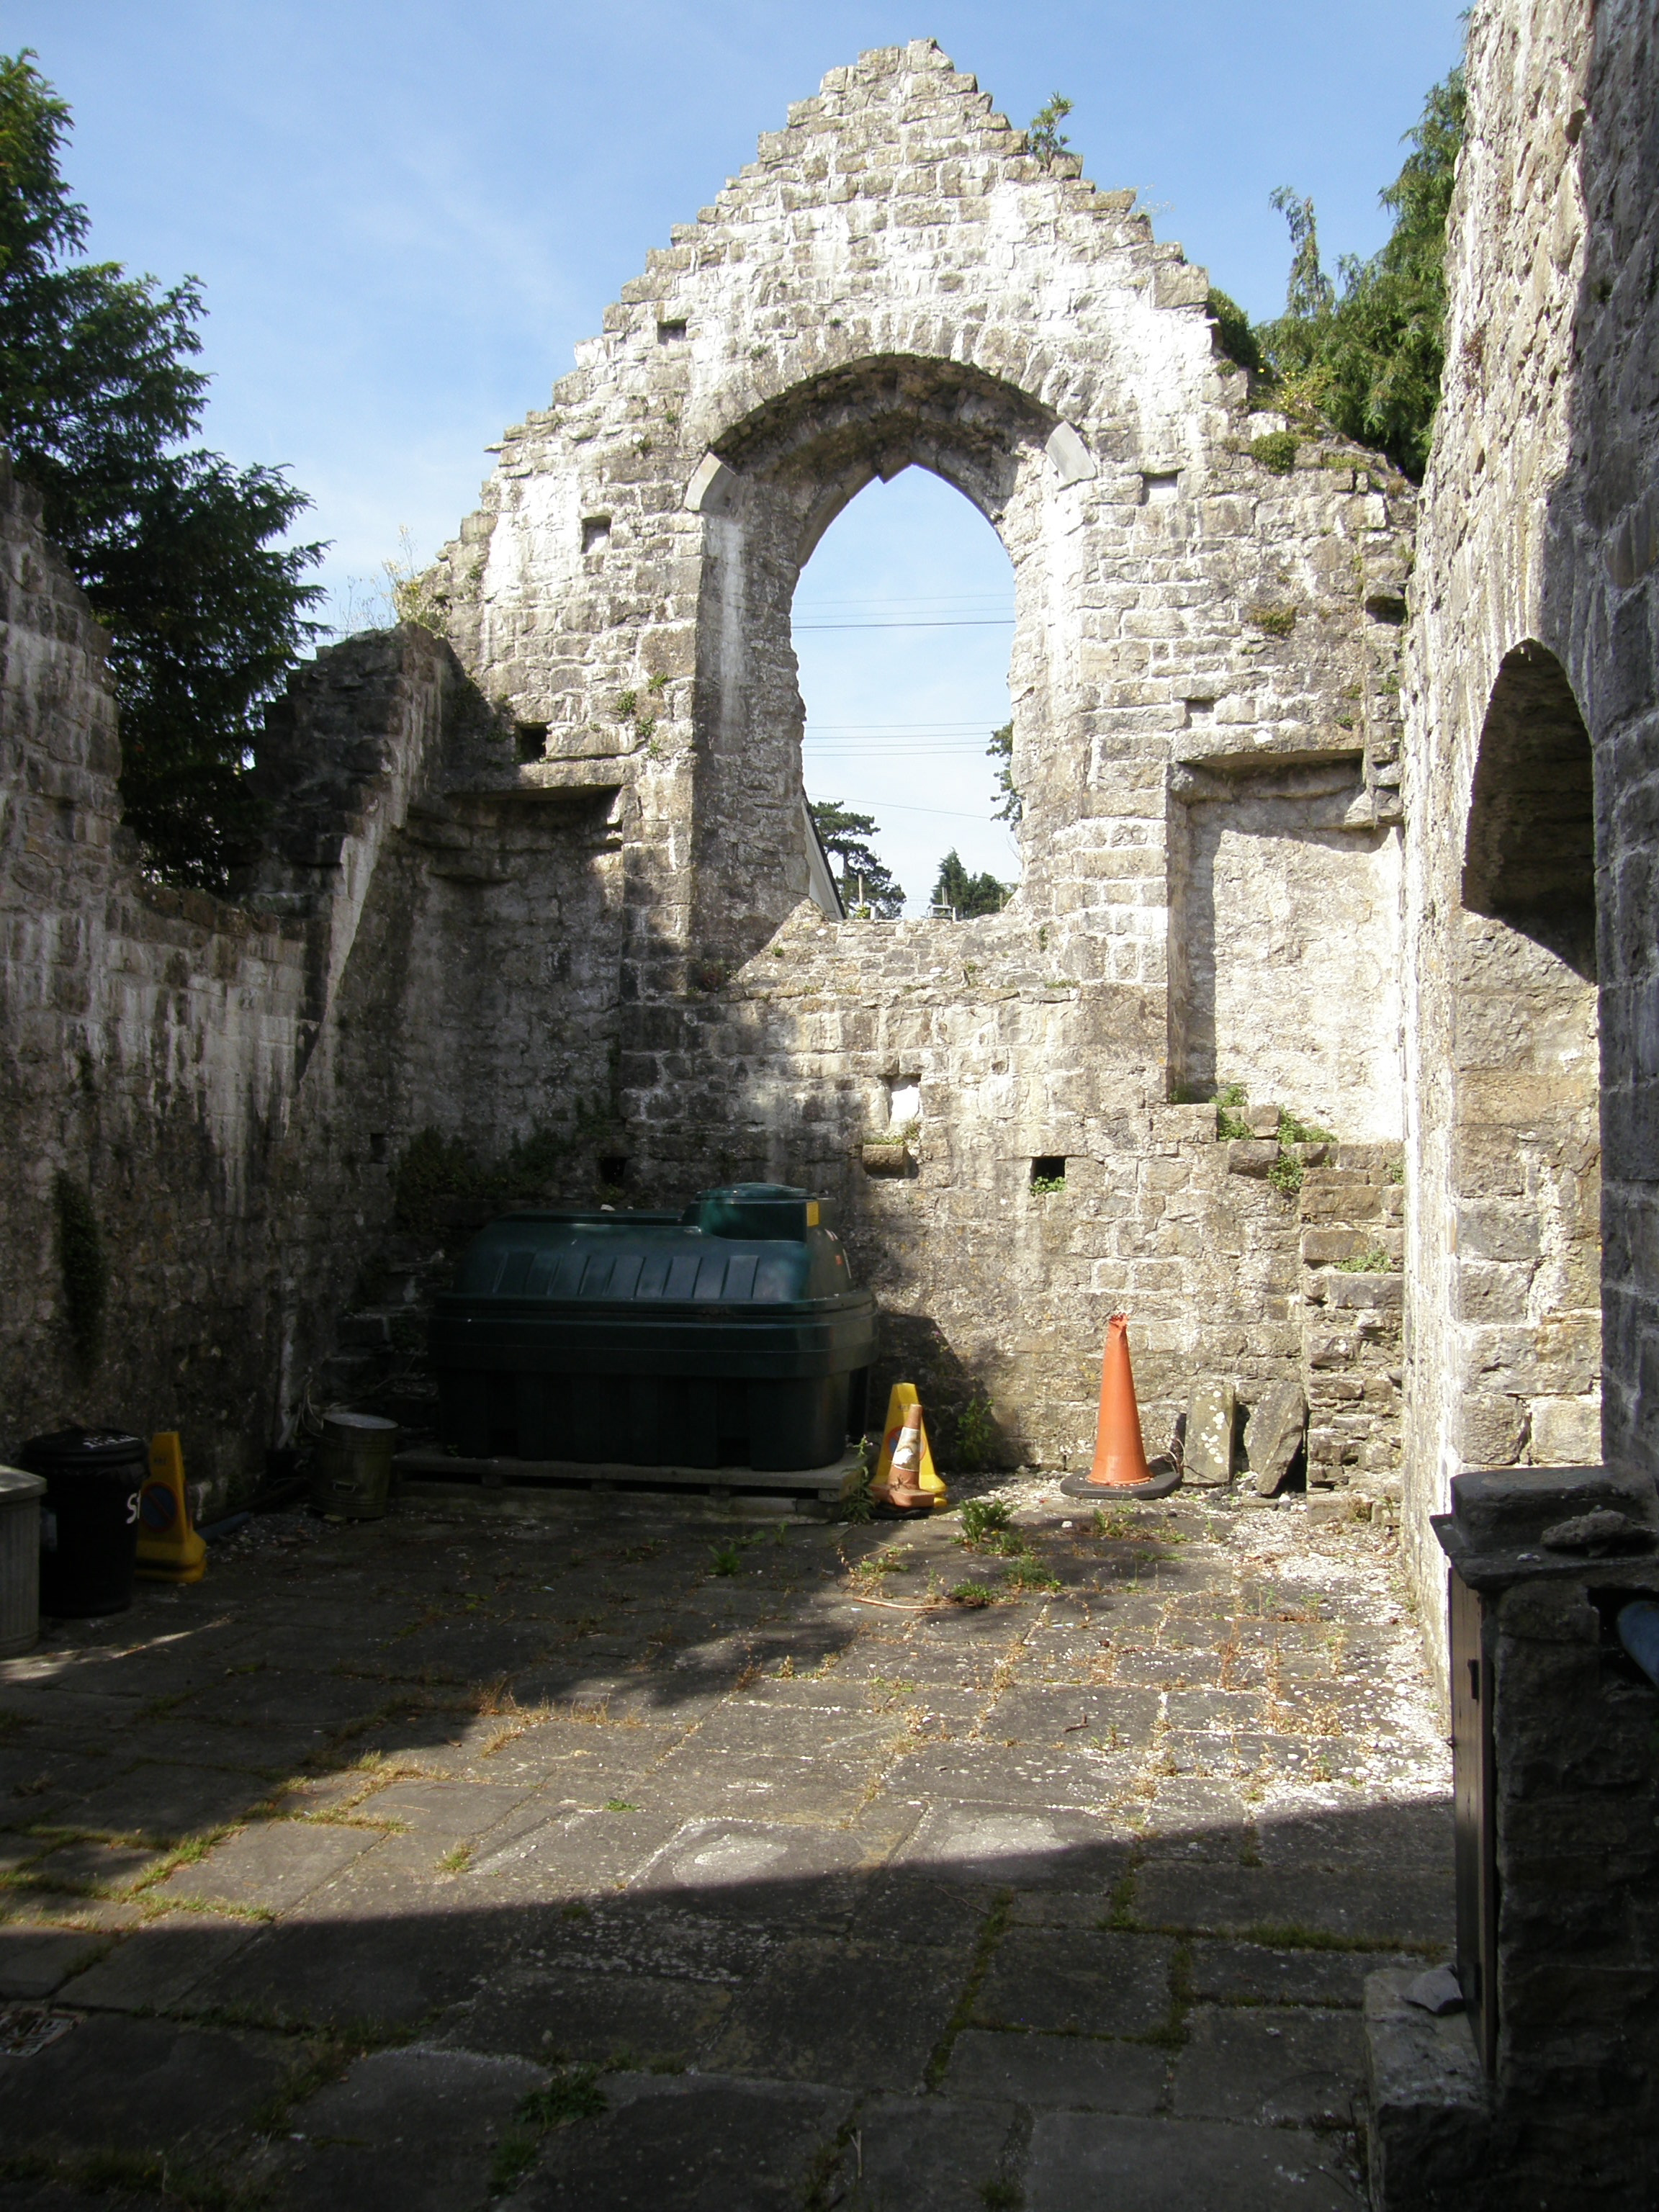 St. Illtuds, ruined chapel with composting bin